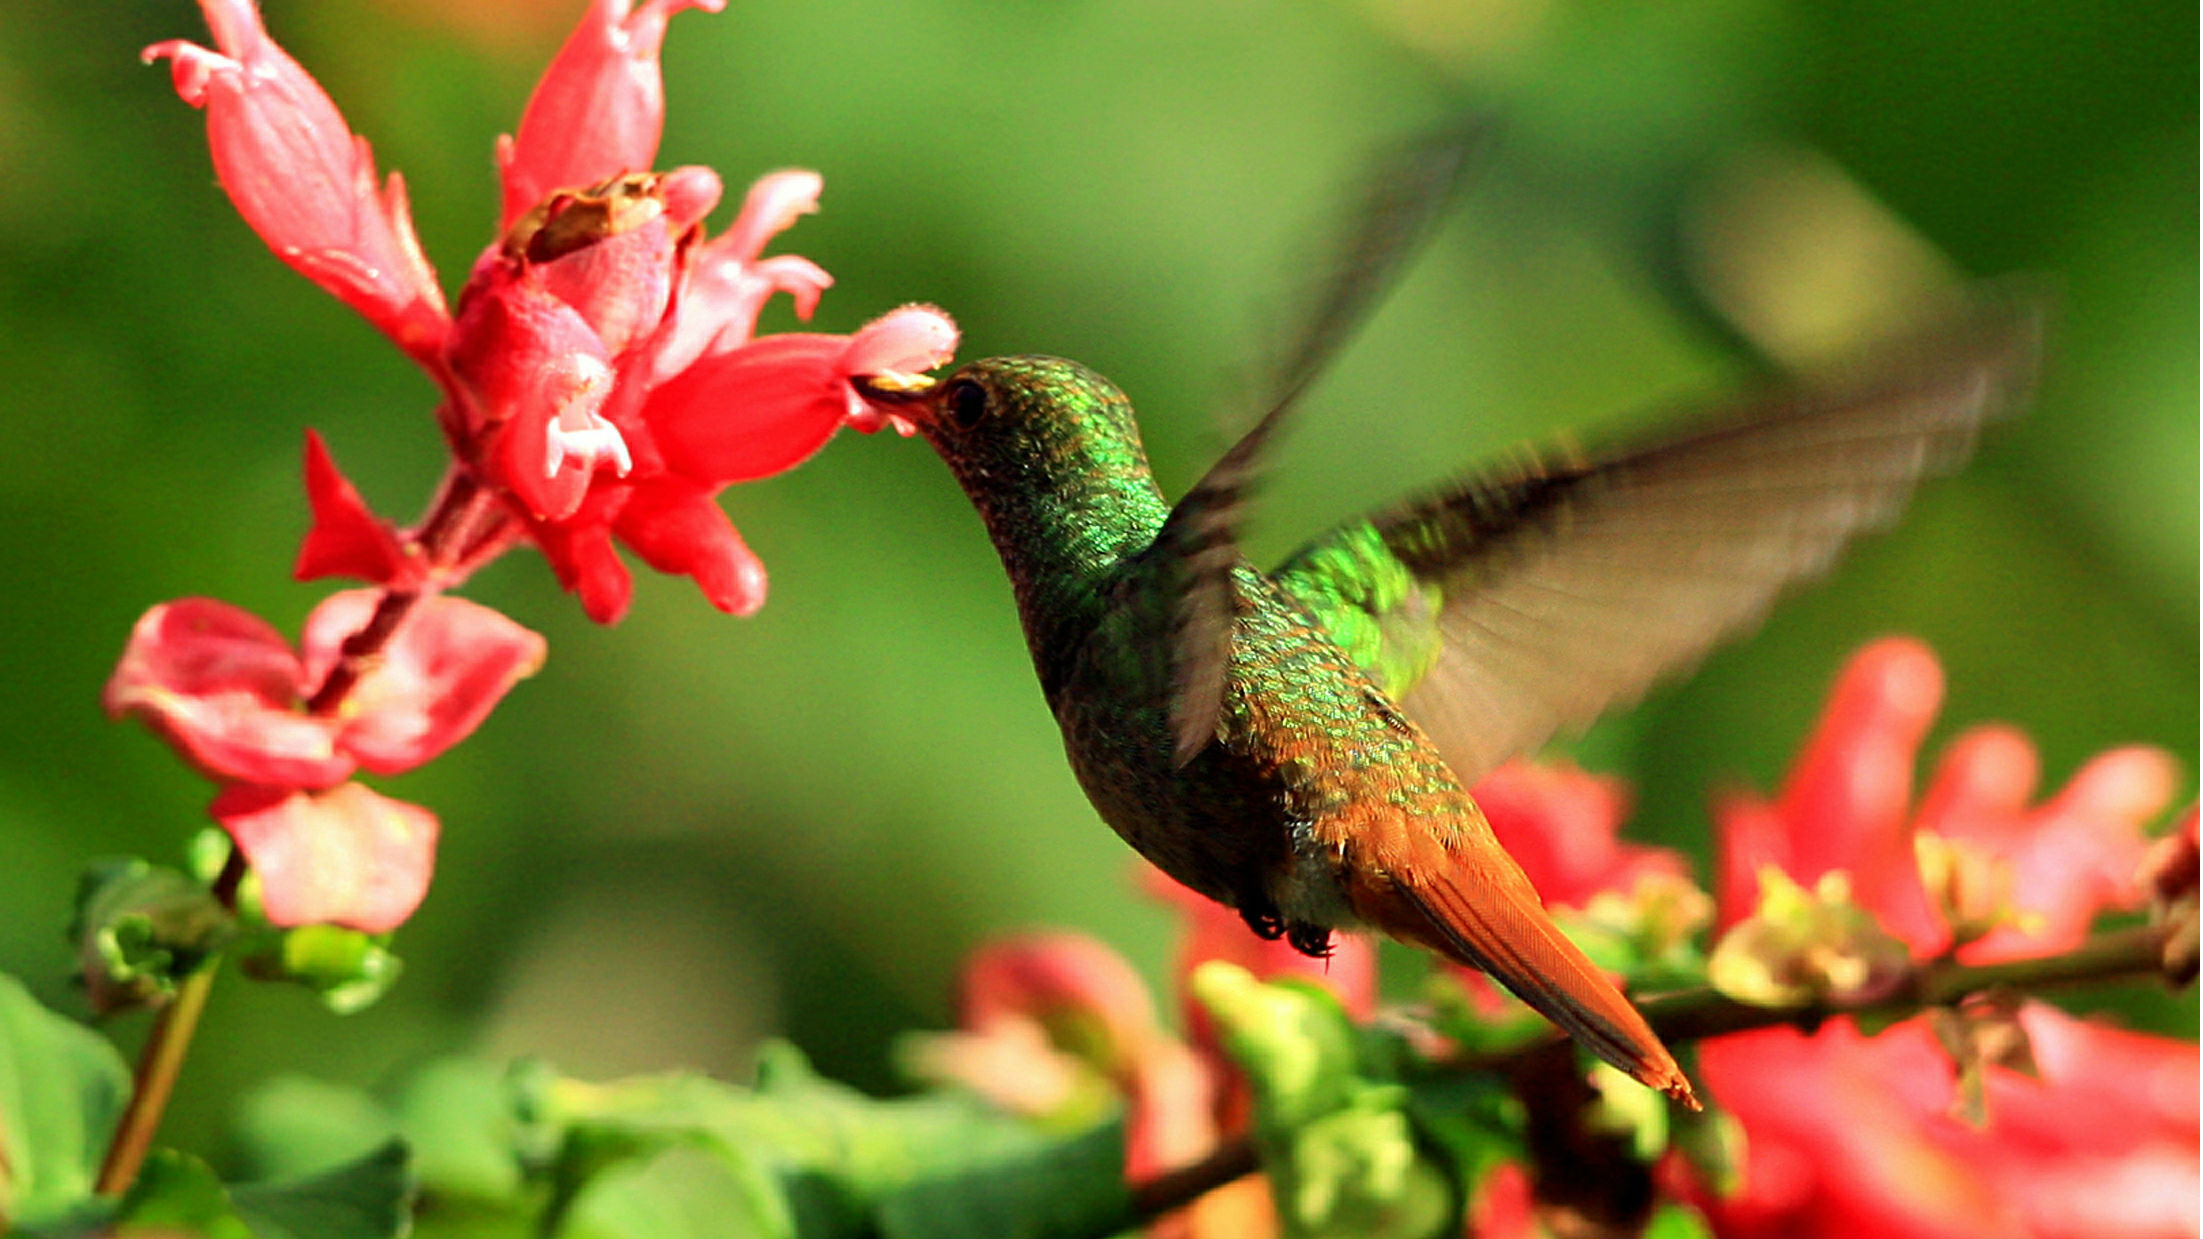 PHOTO TAKEN 12JAN06 - A Rufous-tailed Hummingbird (Amazilia rabirrufa) hovers while drinking from a flower at La Selva biological station in Sarapiqui, 80 miles (129 km) north of San Jose, Costa Rica January 12, 2006. The Selva is one of the world's most important sites for tropical ecosystem research. [La Selva has about 73% of its area under primary tropical rain forest. Each year, more than 250 scientists from some 25 countries and international students come to La Selva to study tropical ecology. Species diversity include more than, 330 species of trees, and 43 species of birds. Picture taken January 12.]